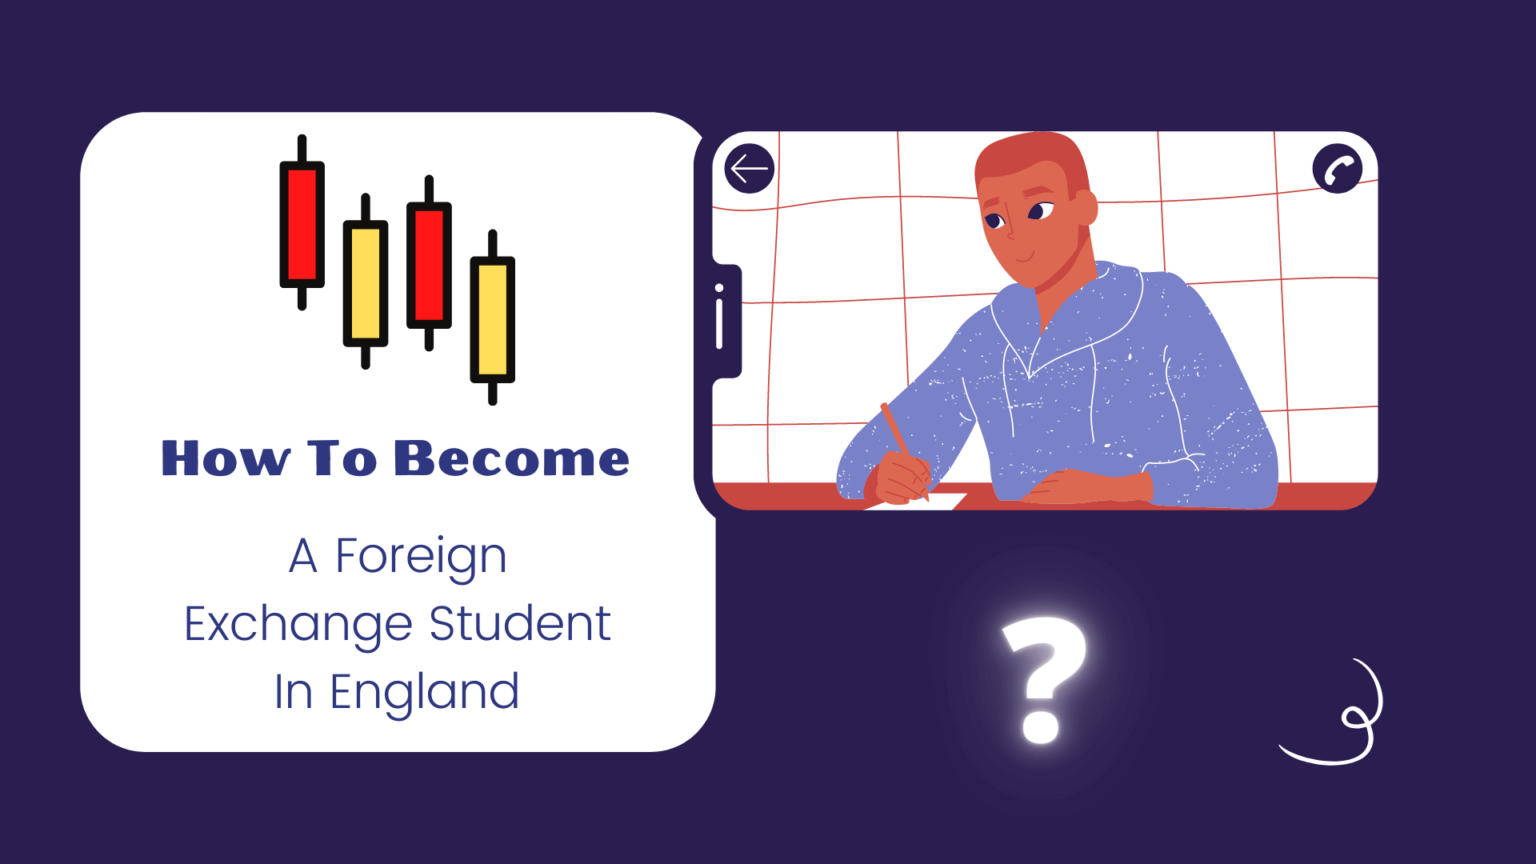 How To Become A Foreign Exchange Student In England